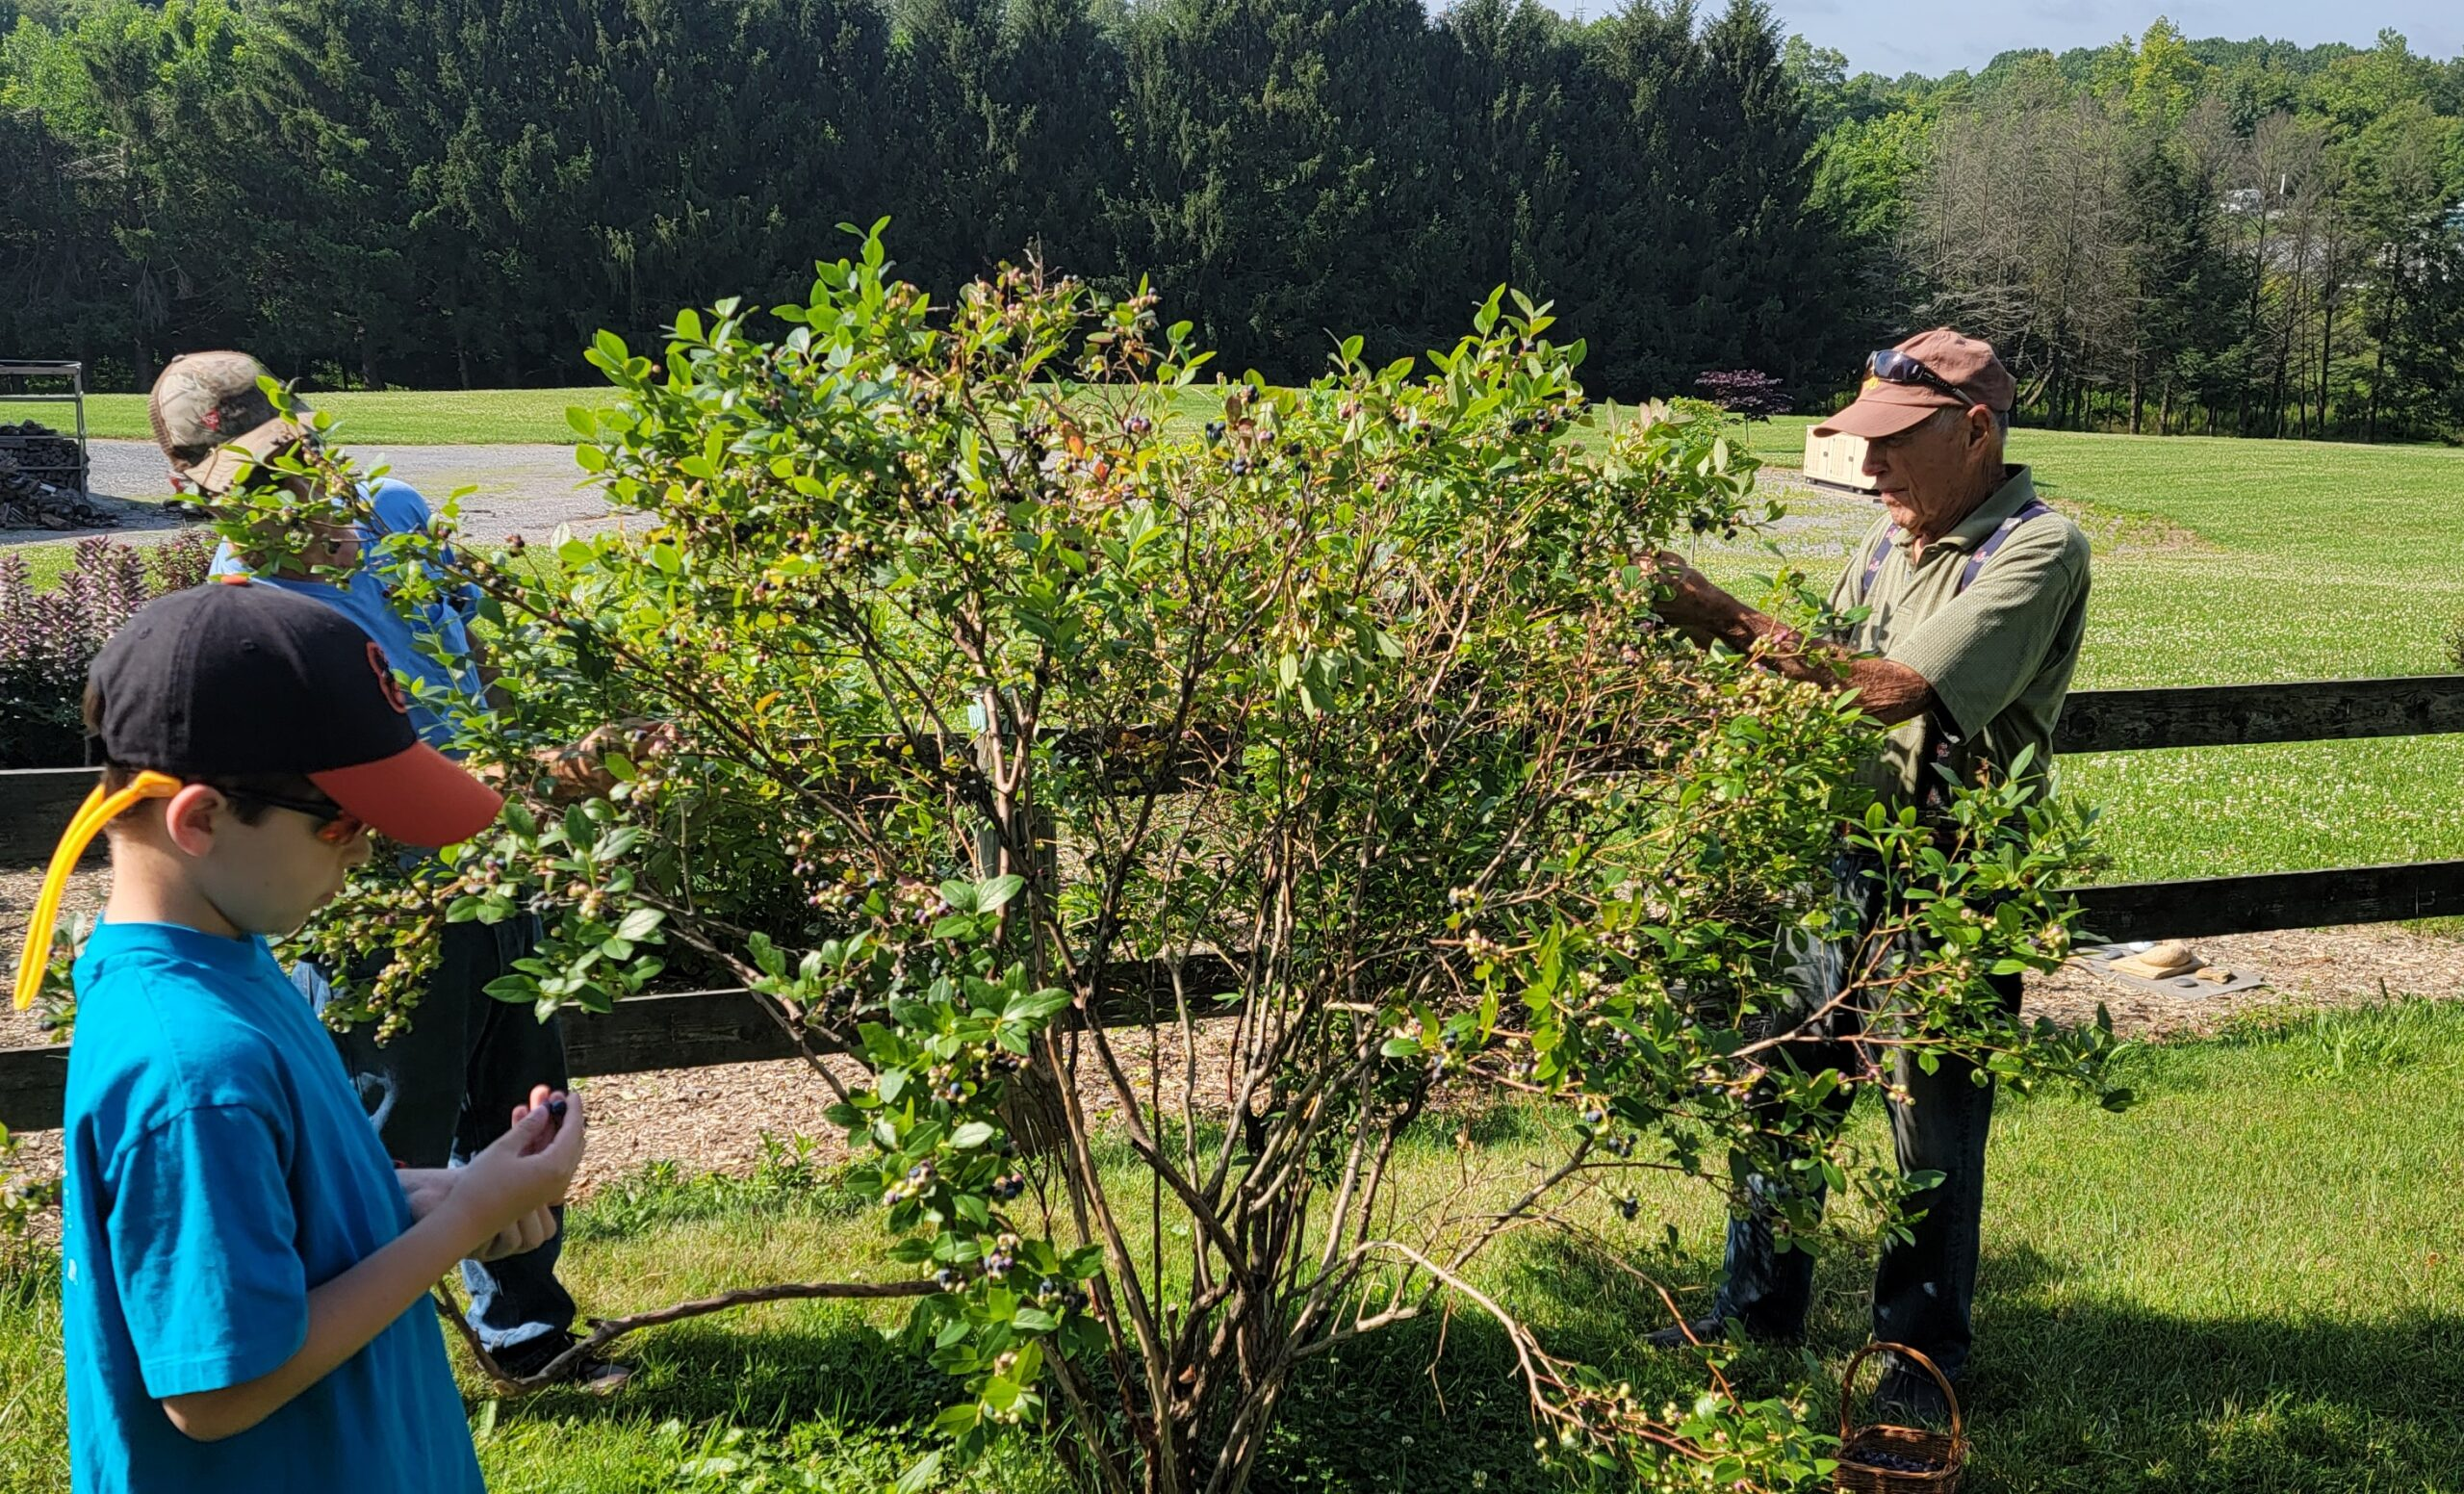 3 Generations Picking Blueberries On A 70 Year Old Bush